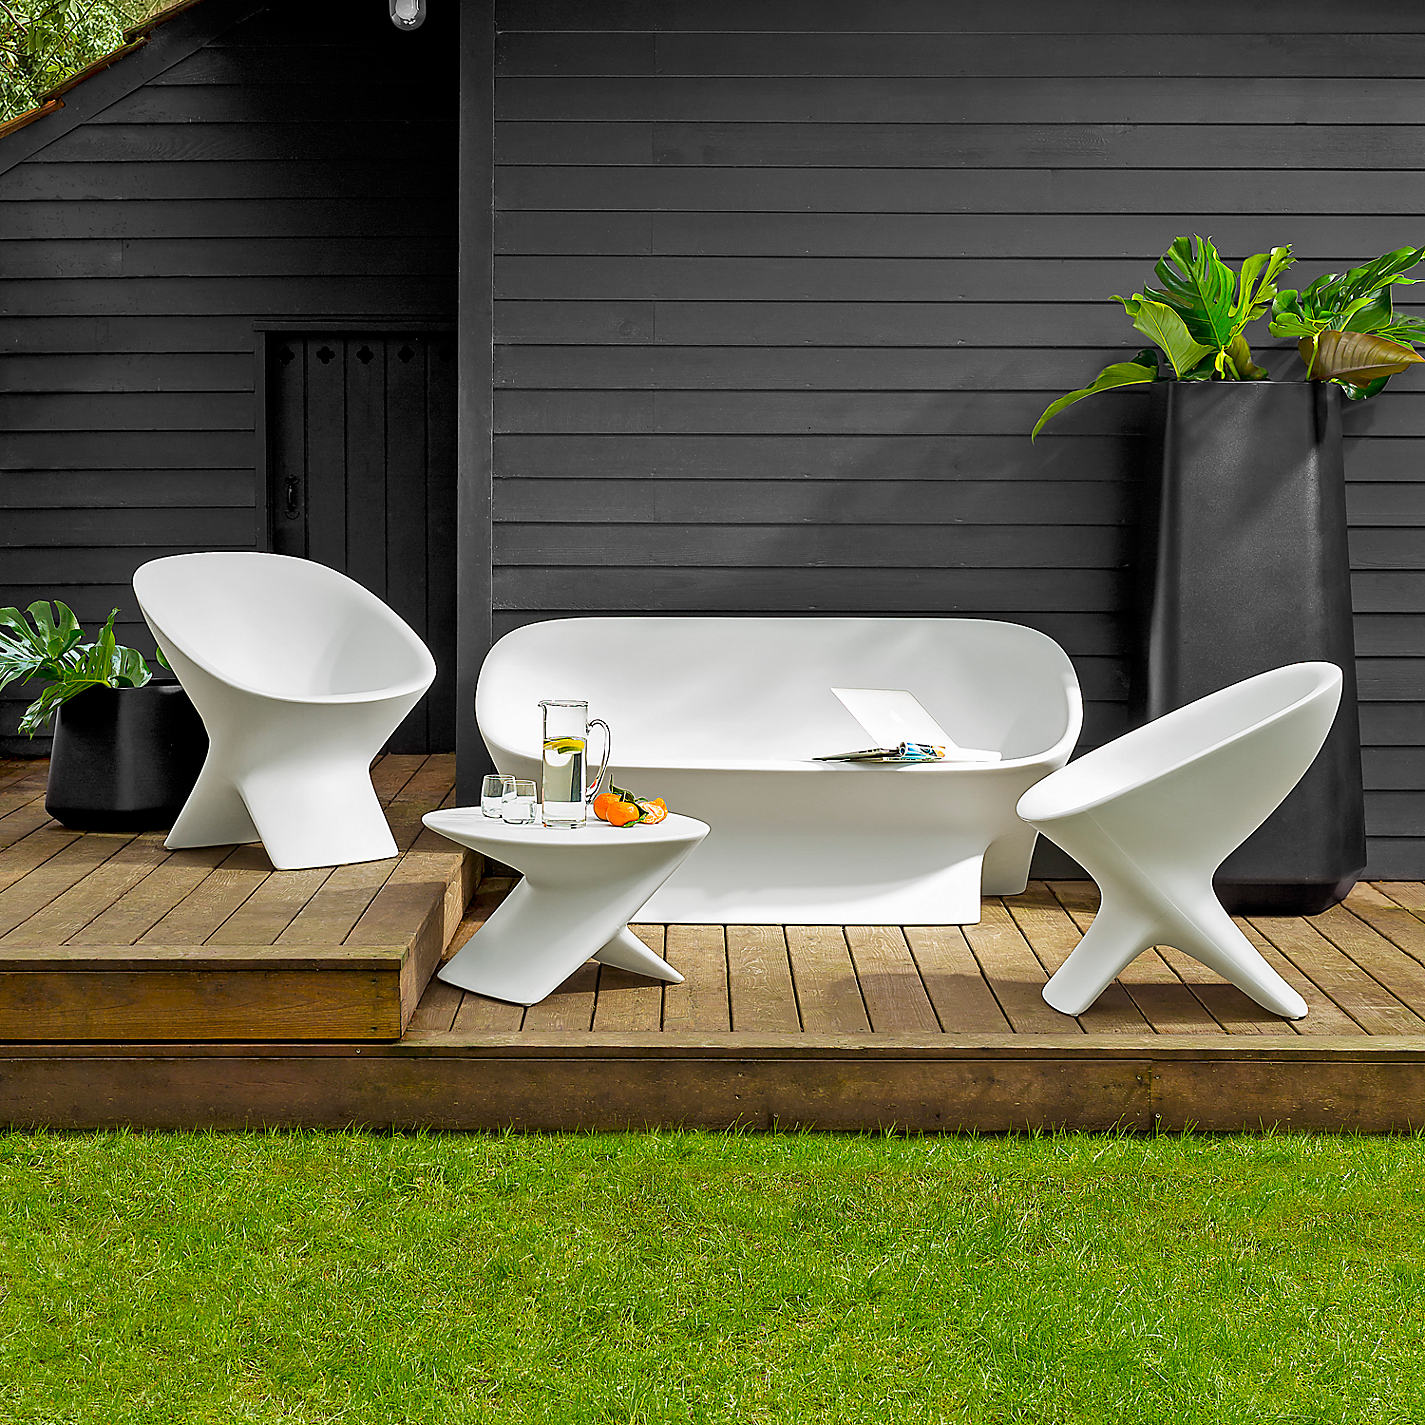 Designer Sofas John Lewis Recycled Garden Furniture From Mad About The House